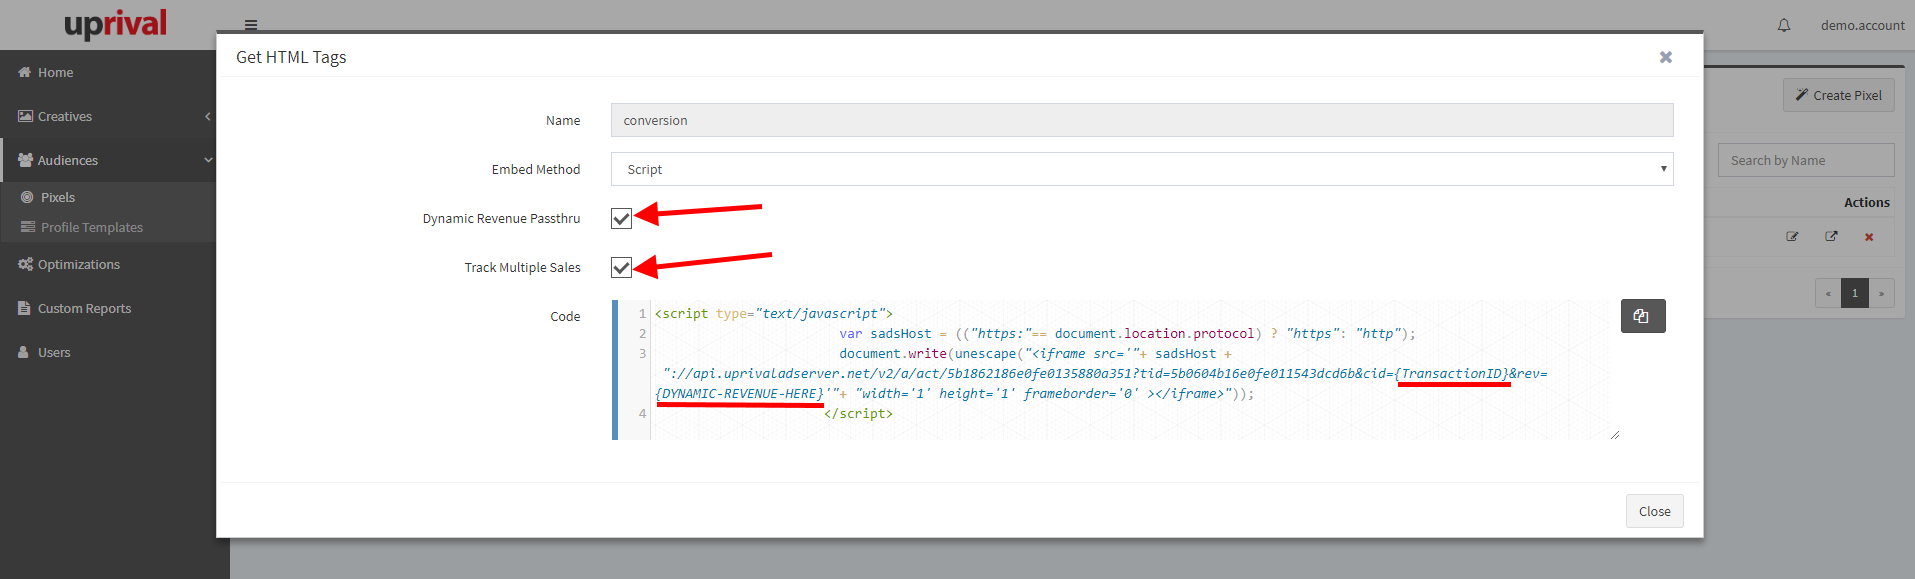 Get Pixel Tag - UpRival Knowledge Base